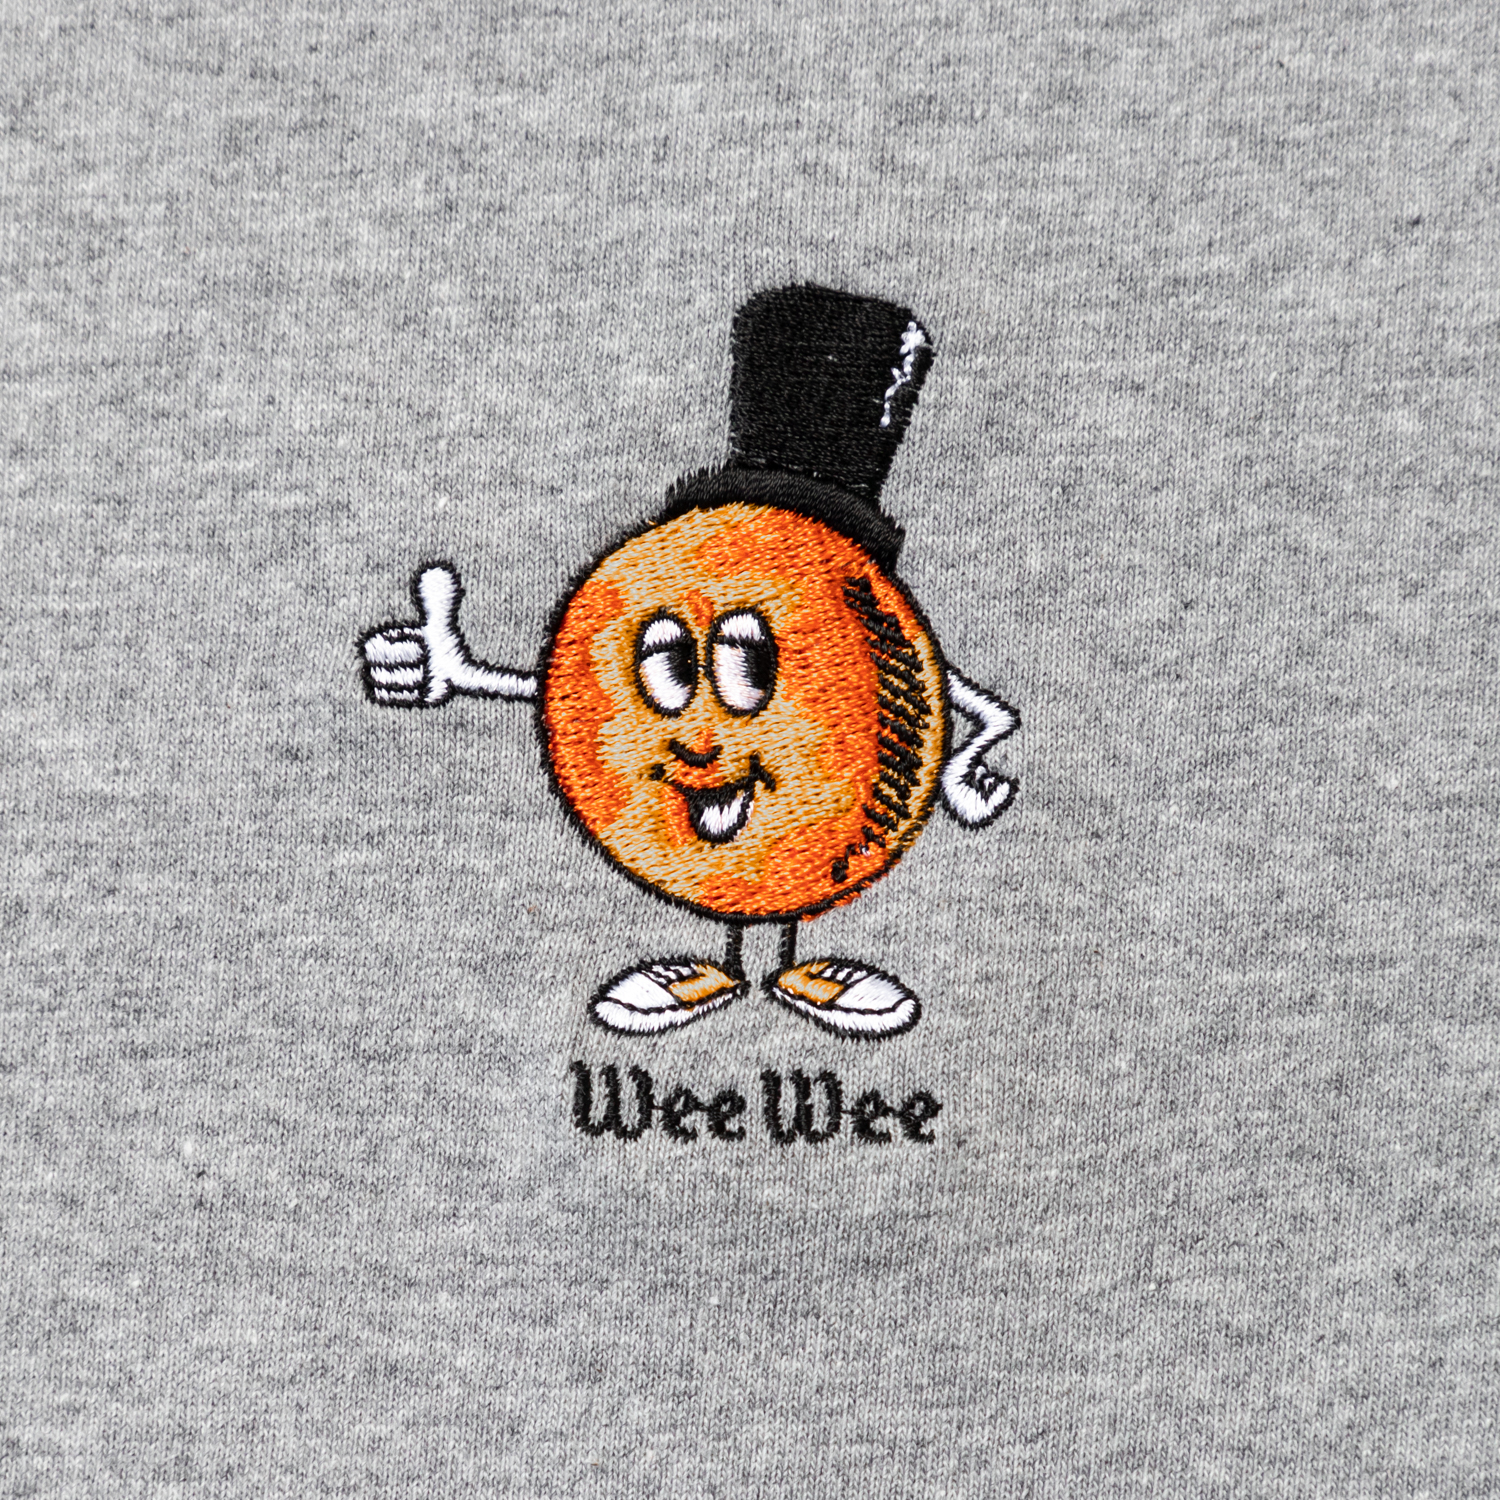 WEE WEE embroidery Tee designed by Jerry UKAI